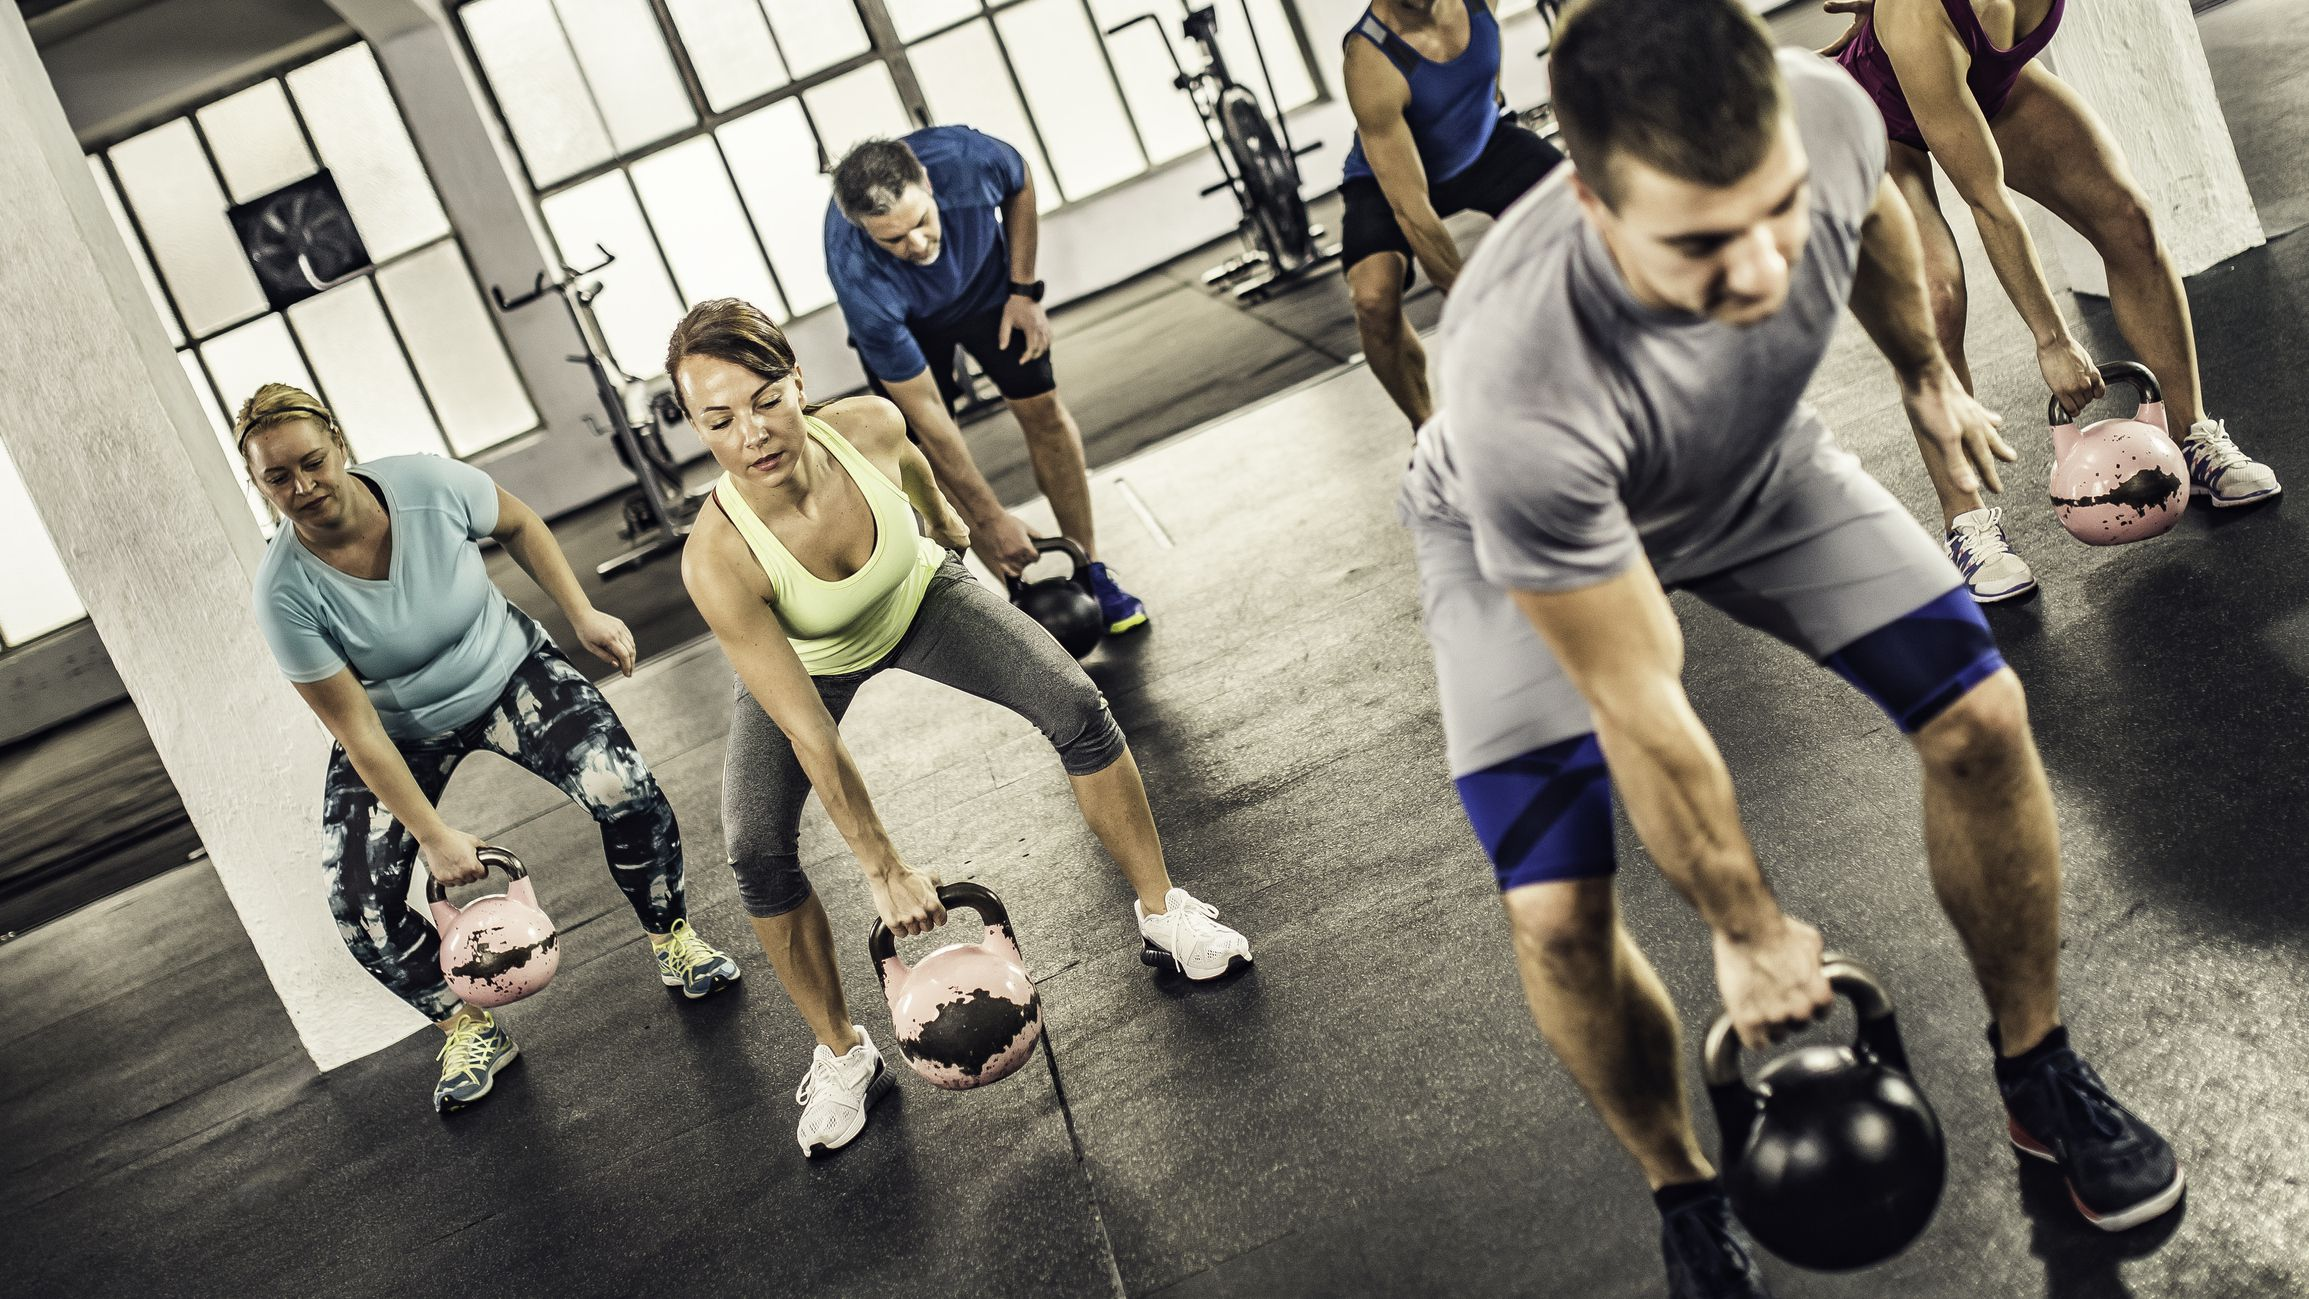 How to Get Your Exercise Routine Back on Track